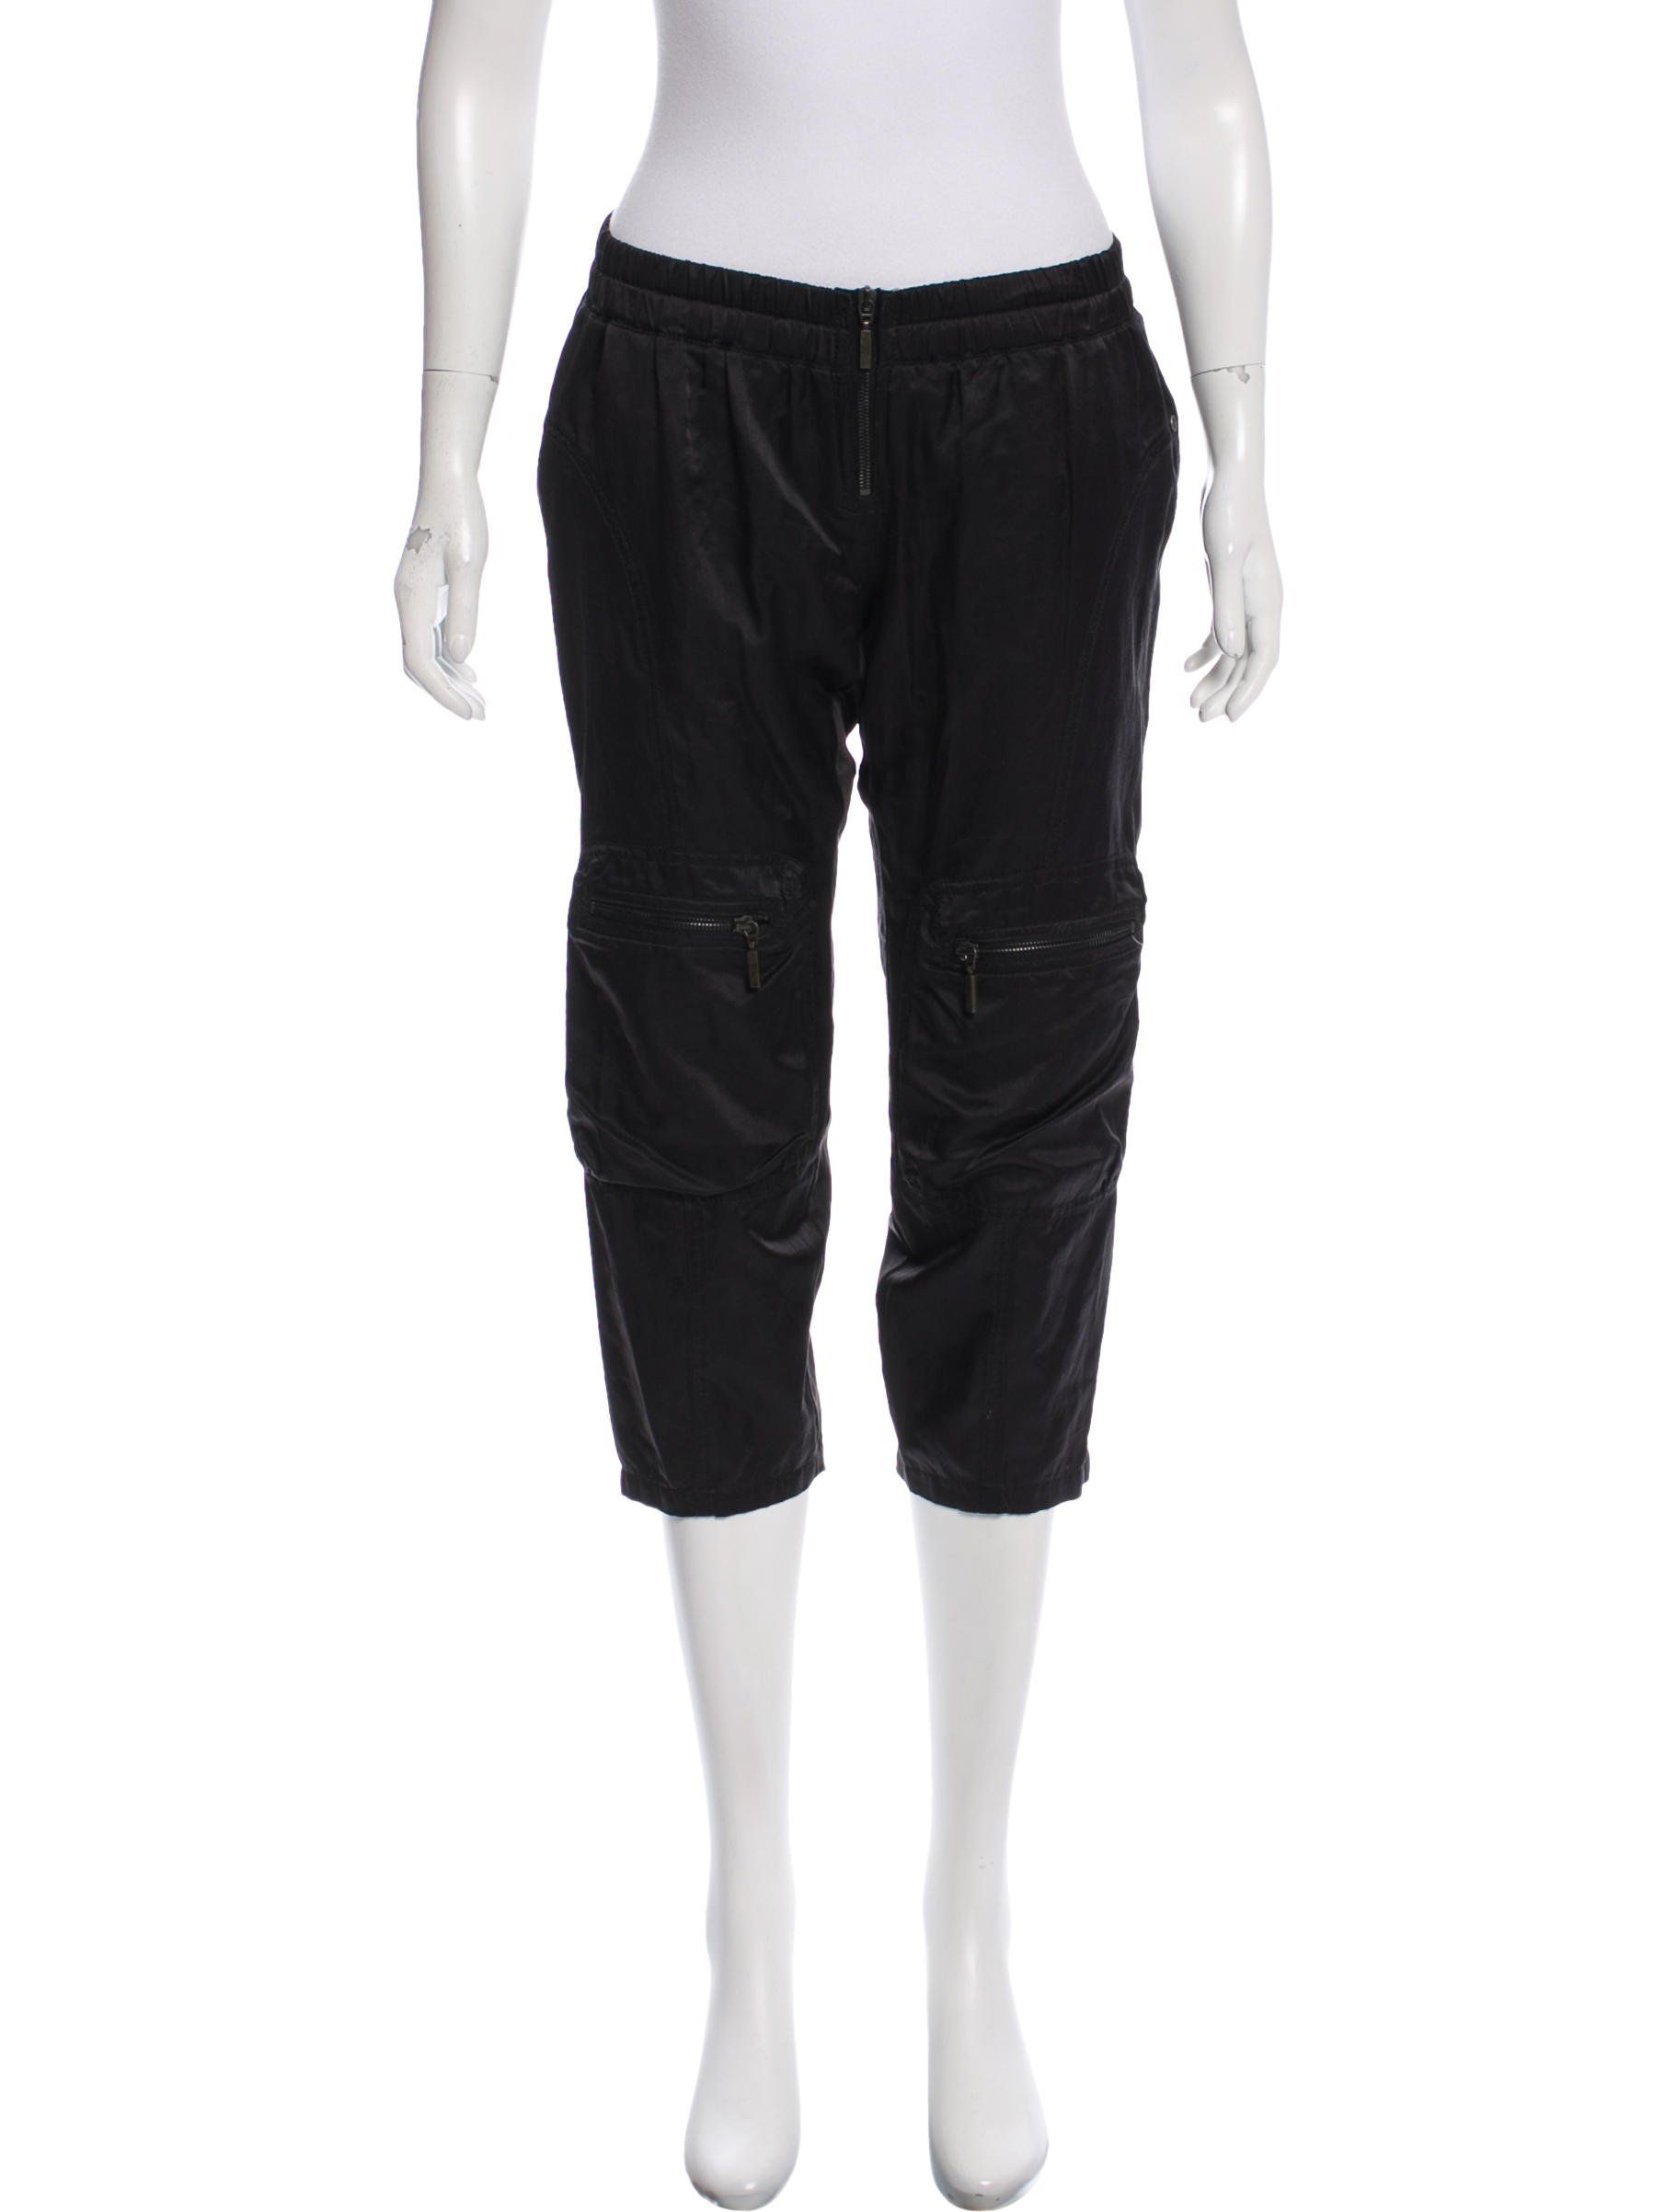 45a62aea8c43 Black Plein Sud cropped low-rise straight-leg pants with elastic ...